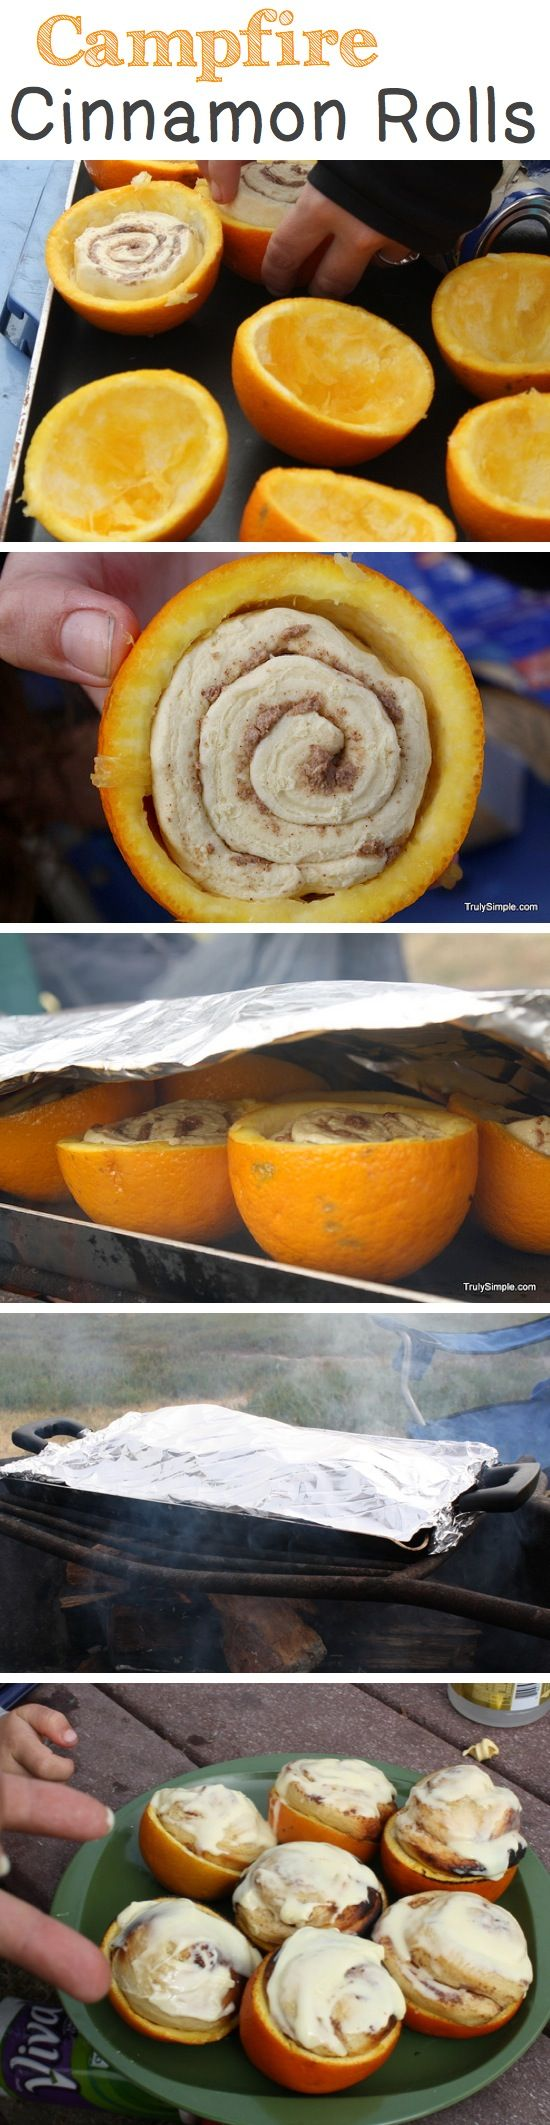 "Previous pinner wrote, ""Campfire Cinnamon Rolls 